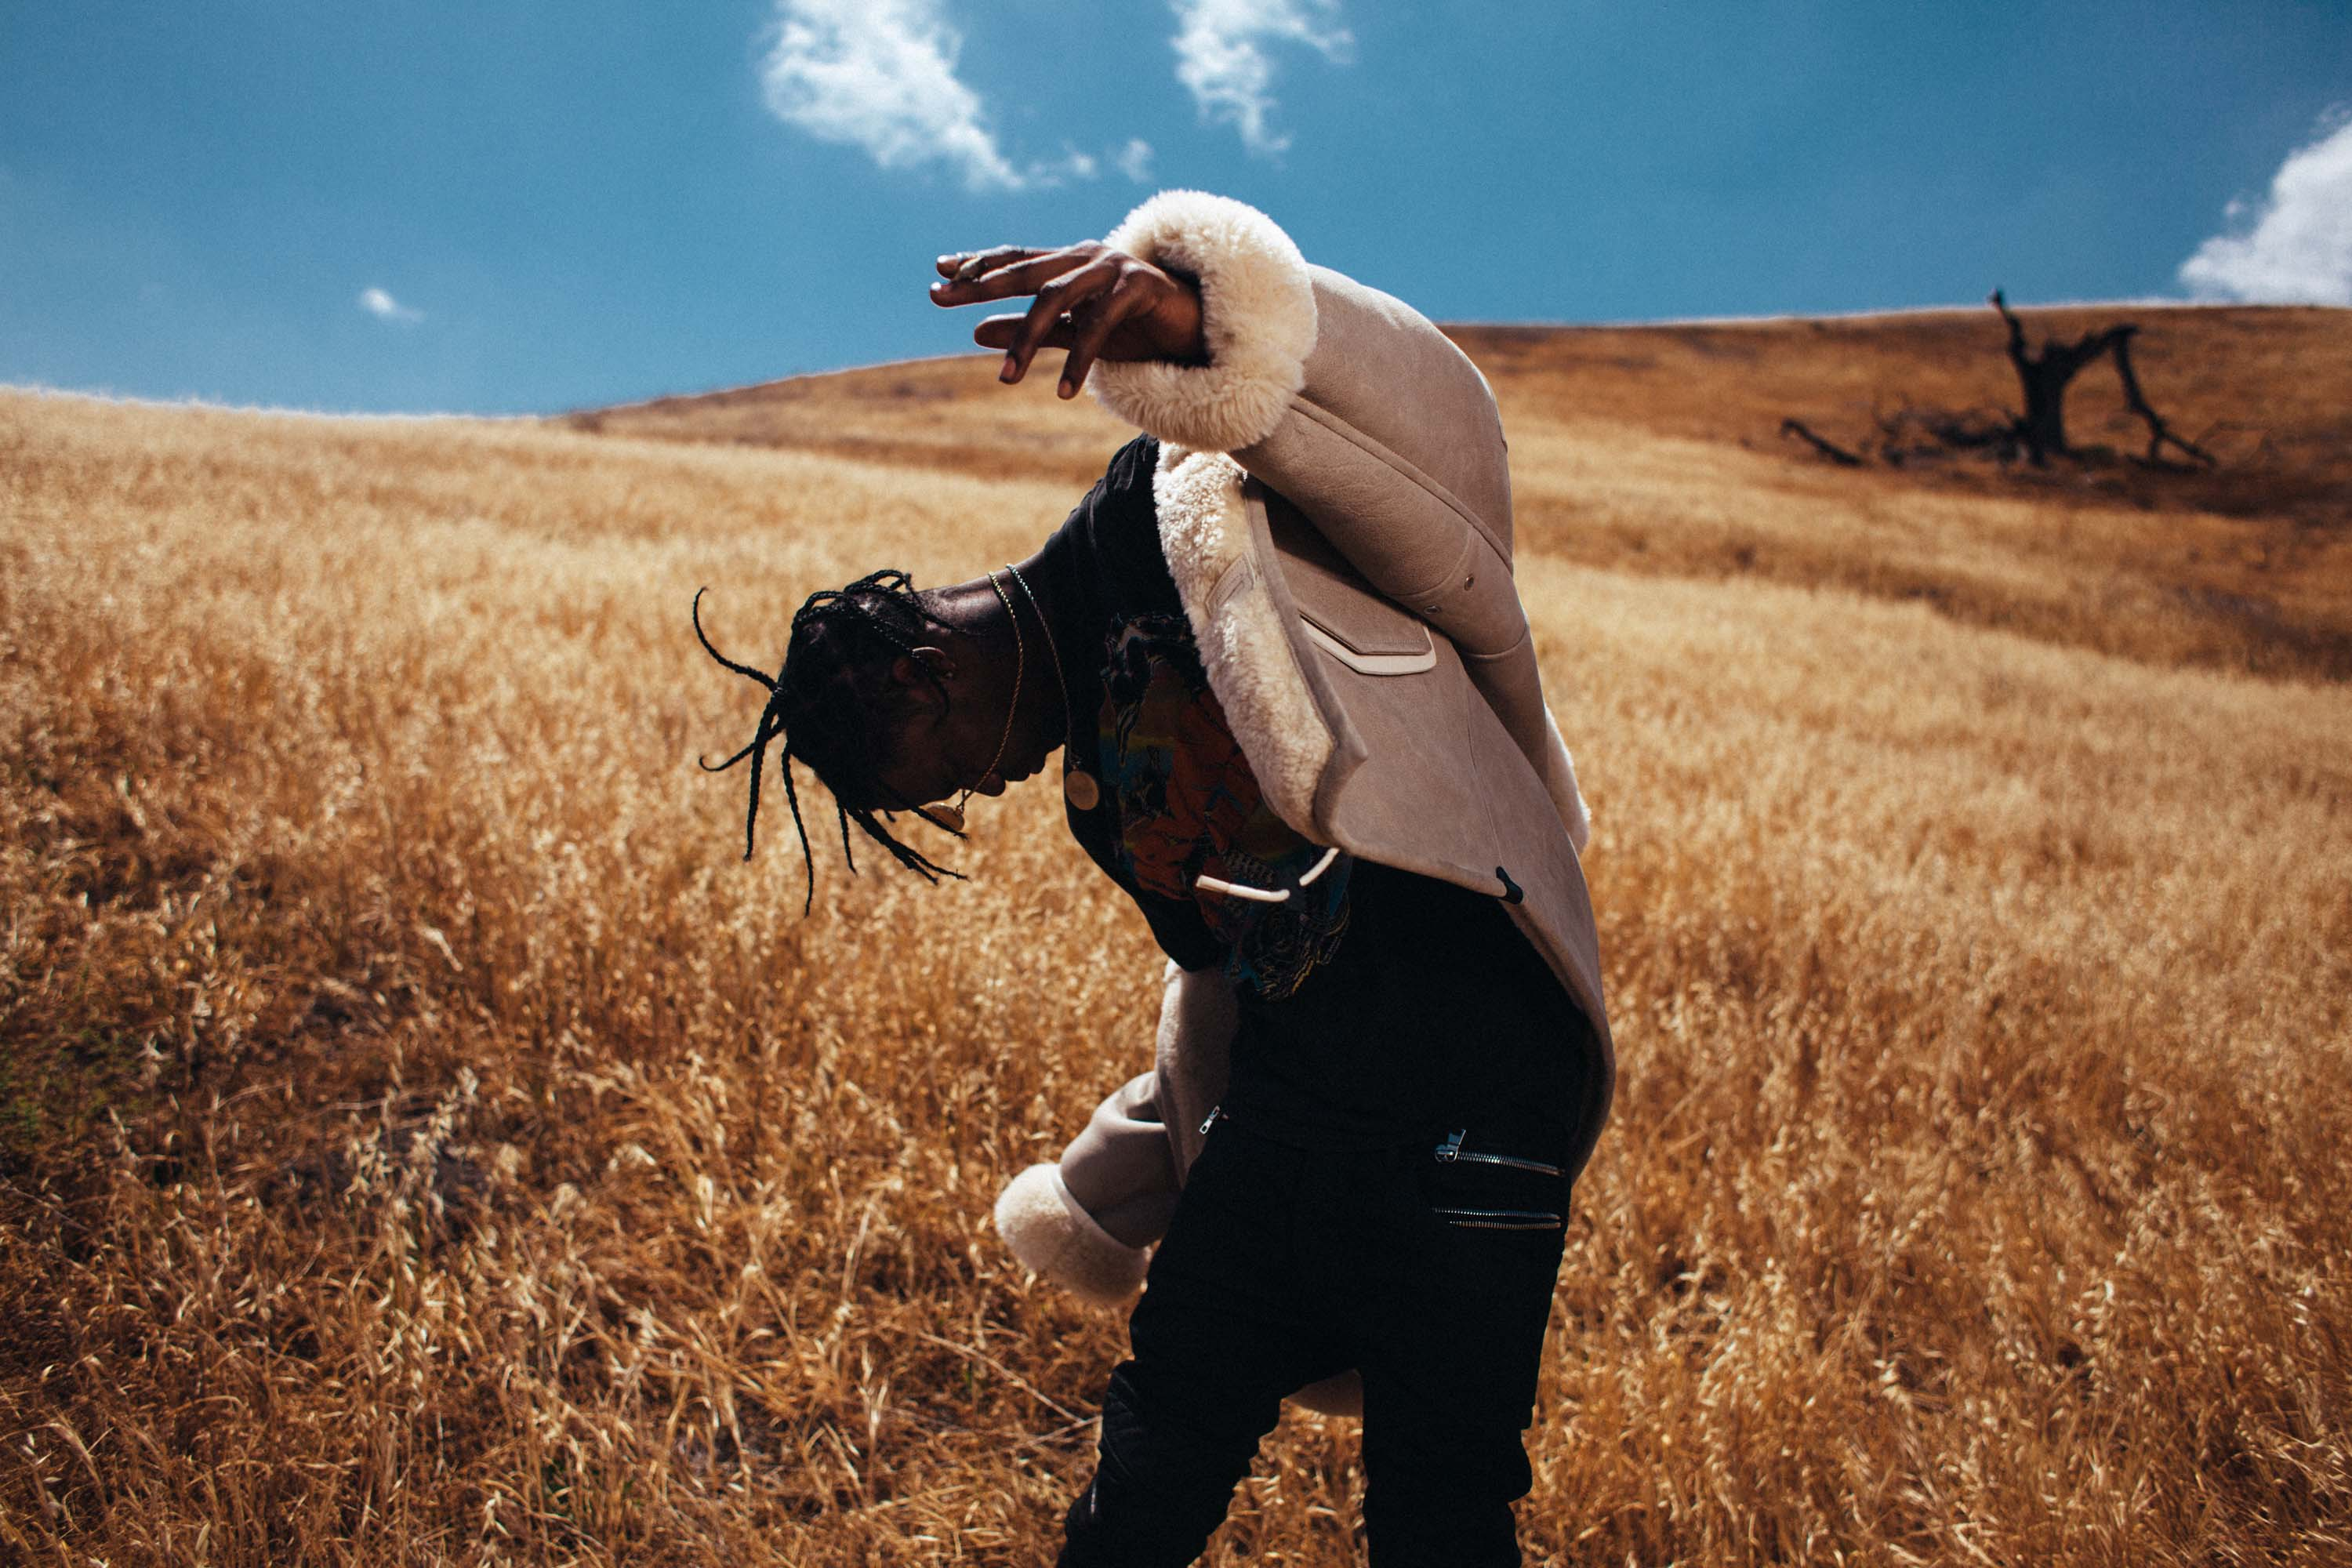 travis scott wallpapers images photos pictures backgrounds